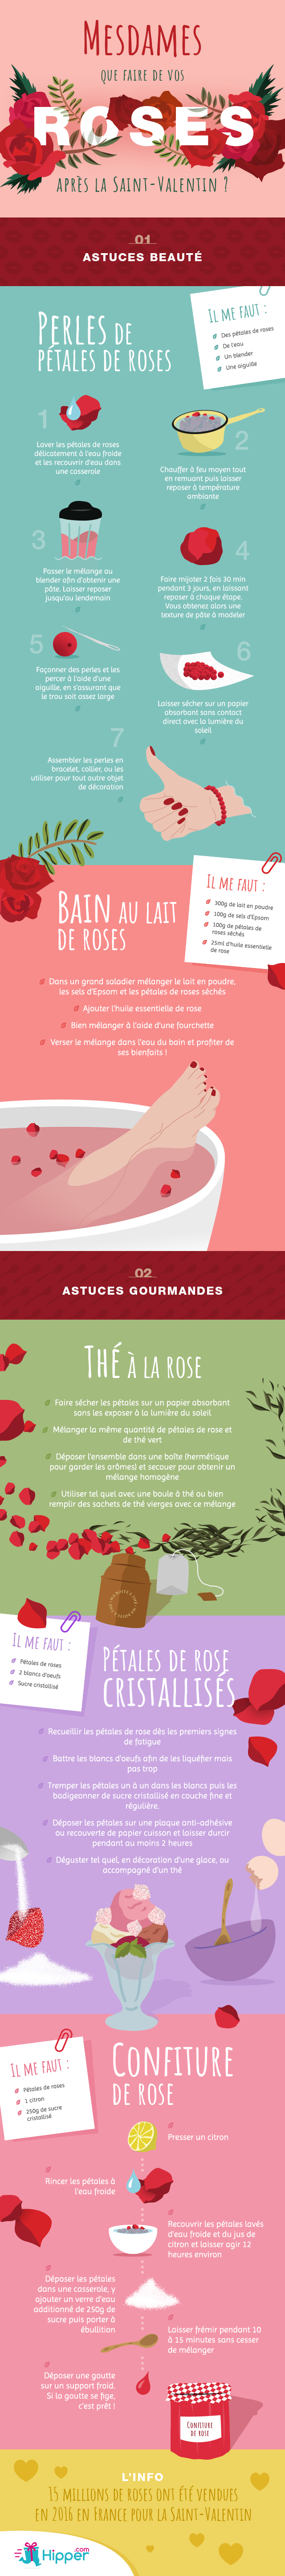 new infographic roses valentines day